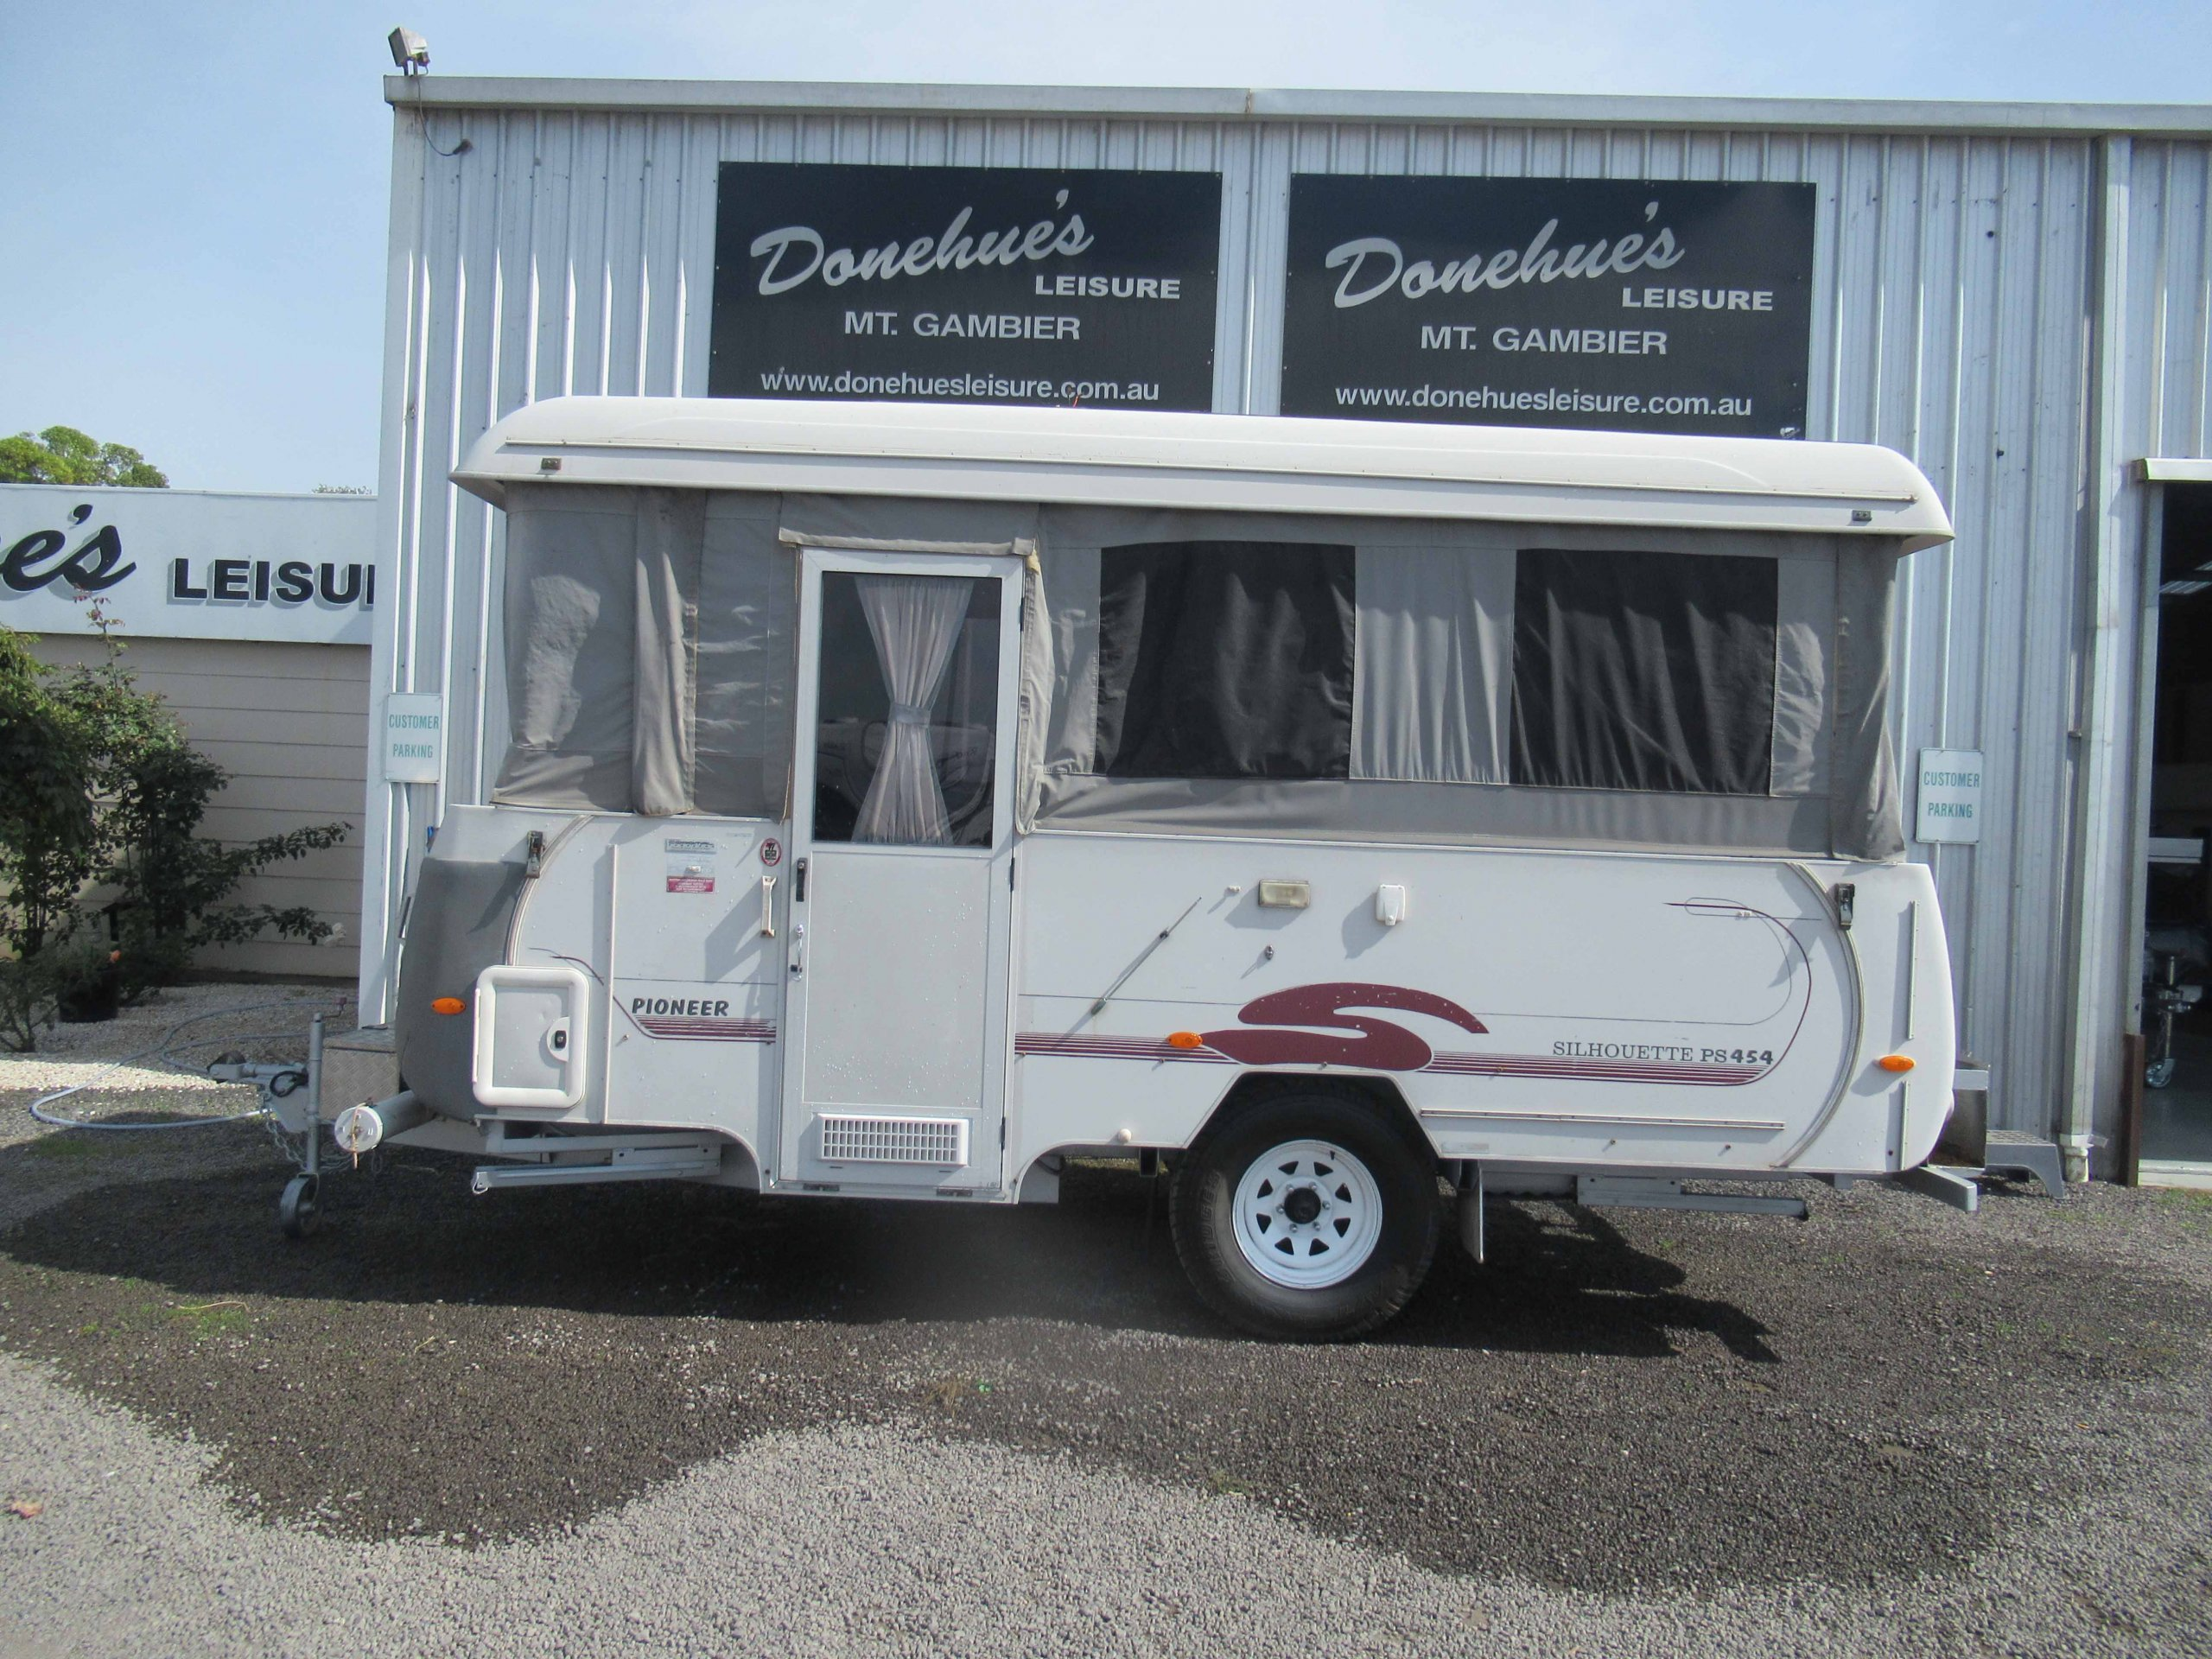 Donehues Leisure Used Coromal Camper Mt Gambier 21863M